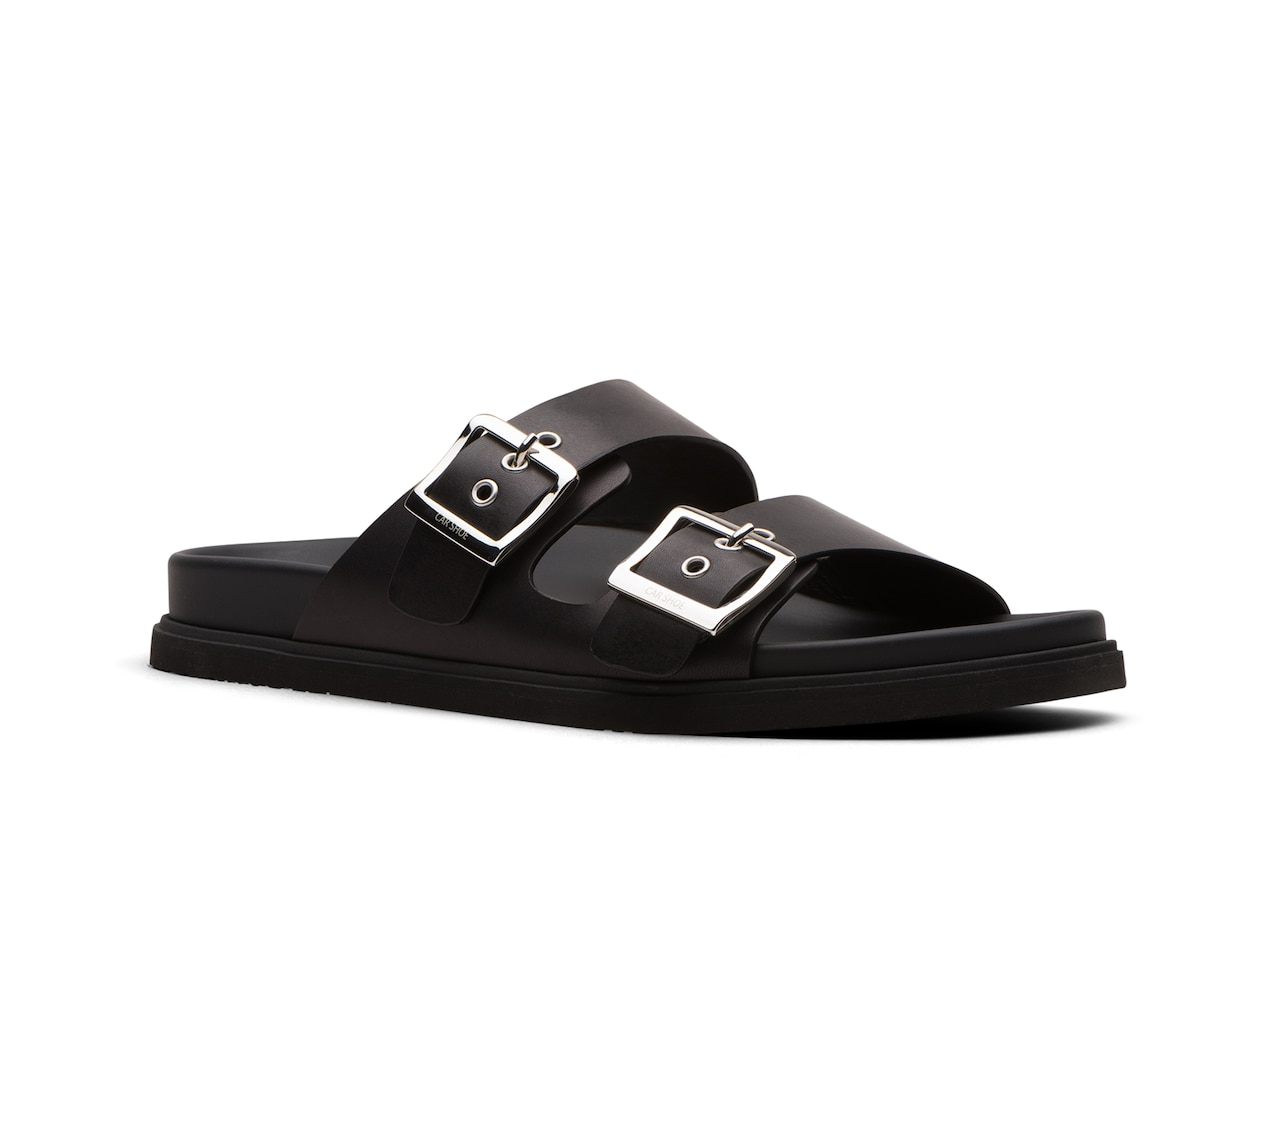 SANDALS IN LEATHER BLACK